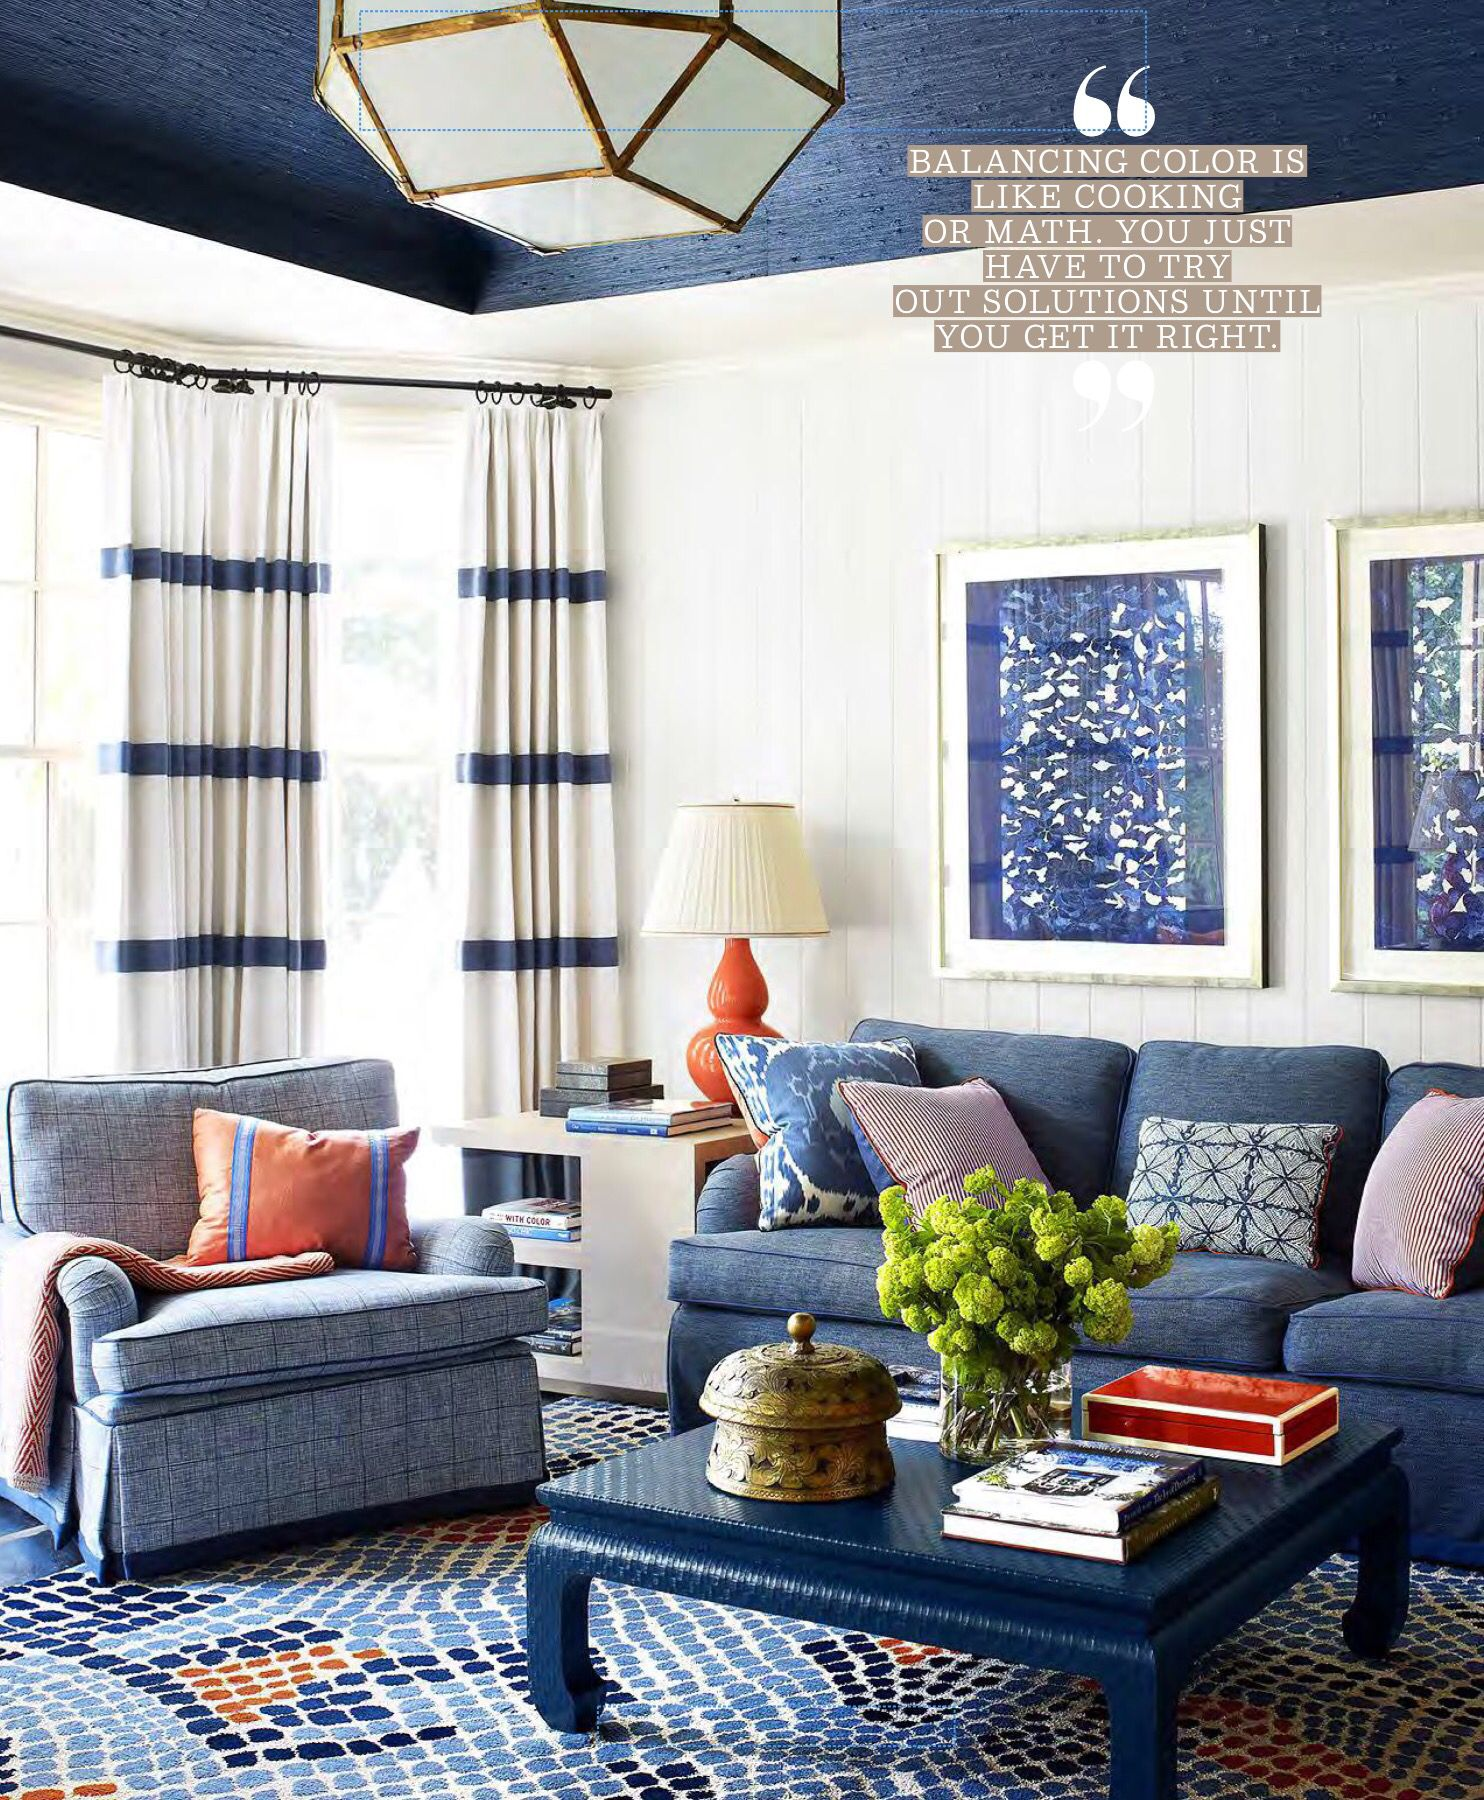 Loving Room Playroom Colorful Family Room Love The Drapes The Rug And The Pops Of Orange Blue And White Living Room Stylish Room Blue Living Room #white #living #room #with #pops #of #color